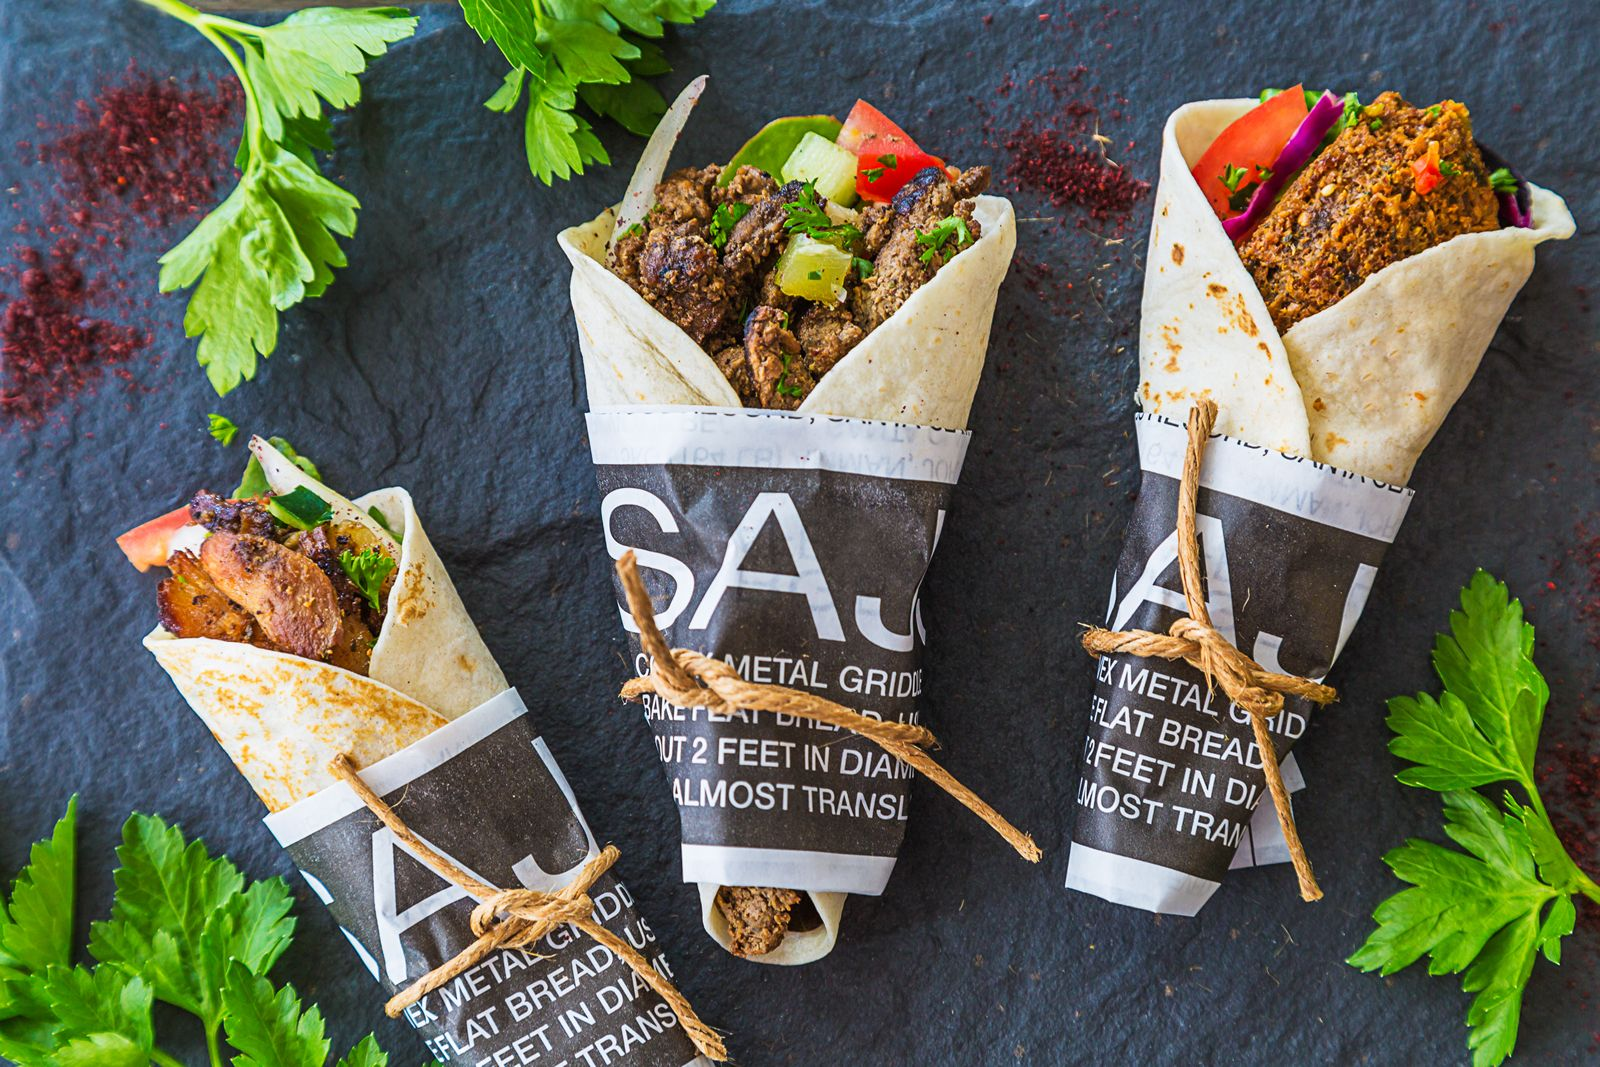 SAJJ Mediterranean will celebrate the Grand Opening of its newest Orange County location in Irvine on Friday, 11/30. All guests will receive 50% off their orders on that date, and the first 30 guests in line at 11:00am will be rewarded with a free entree card to use on their next visit.